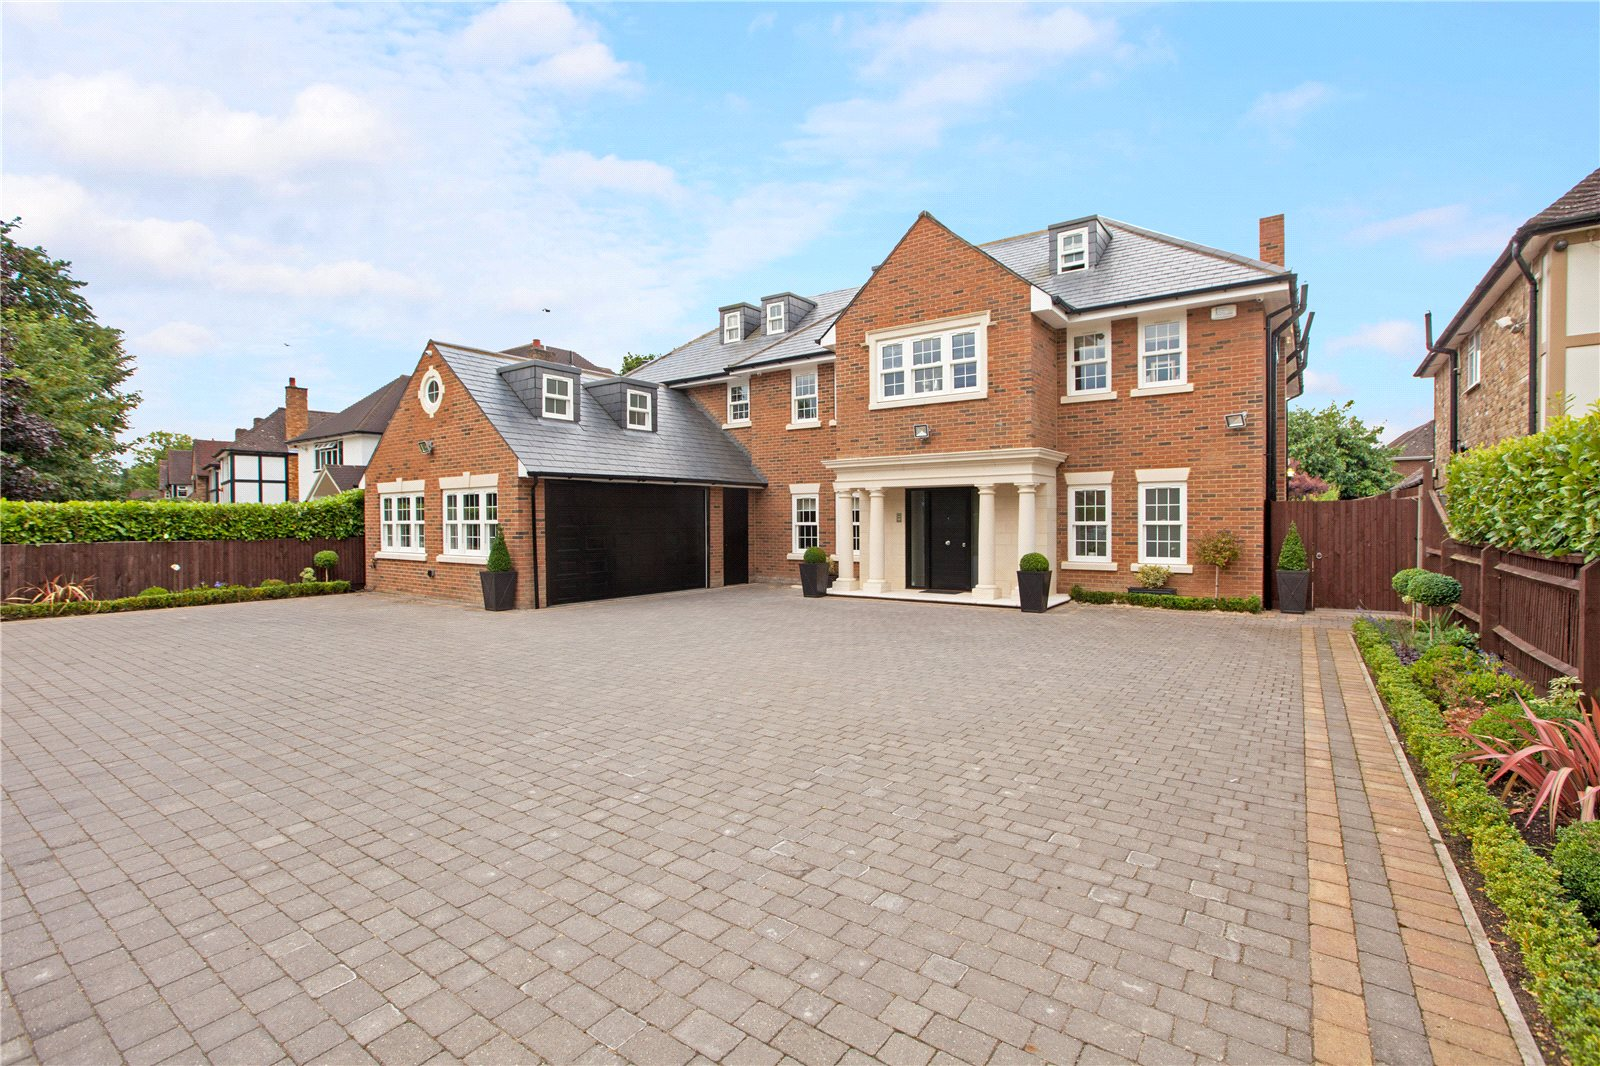 独户住宅 为 销售 在 Dukes Wood Drive, Gerrards Cross, Buckinghamshire, SL9 Gerrards Cross, 英格兰